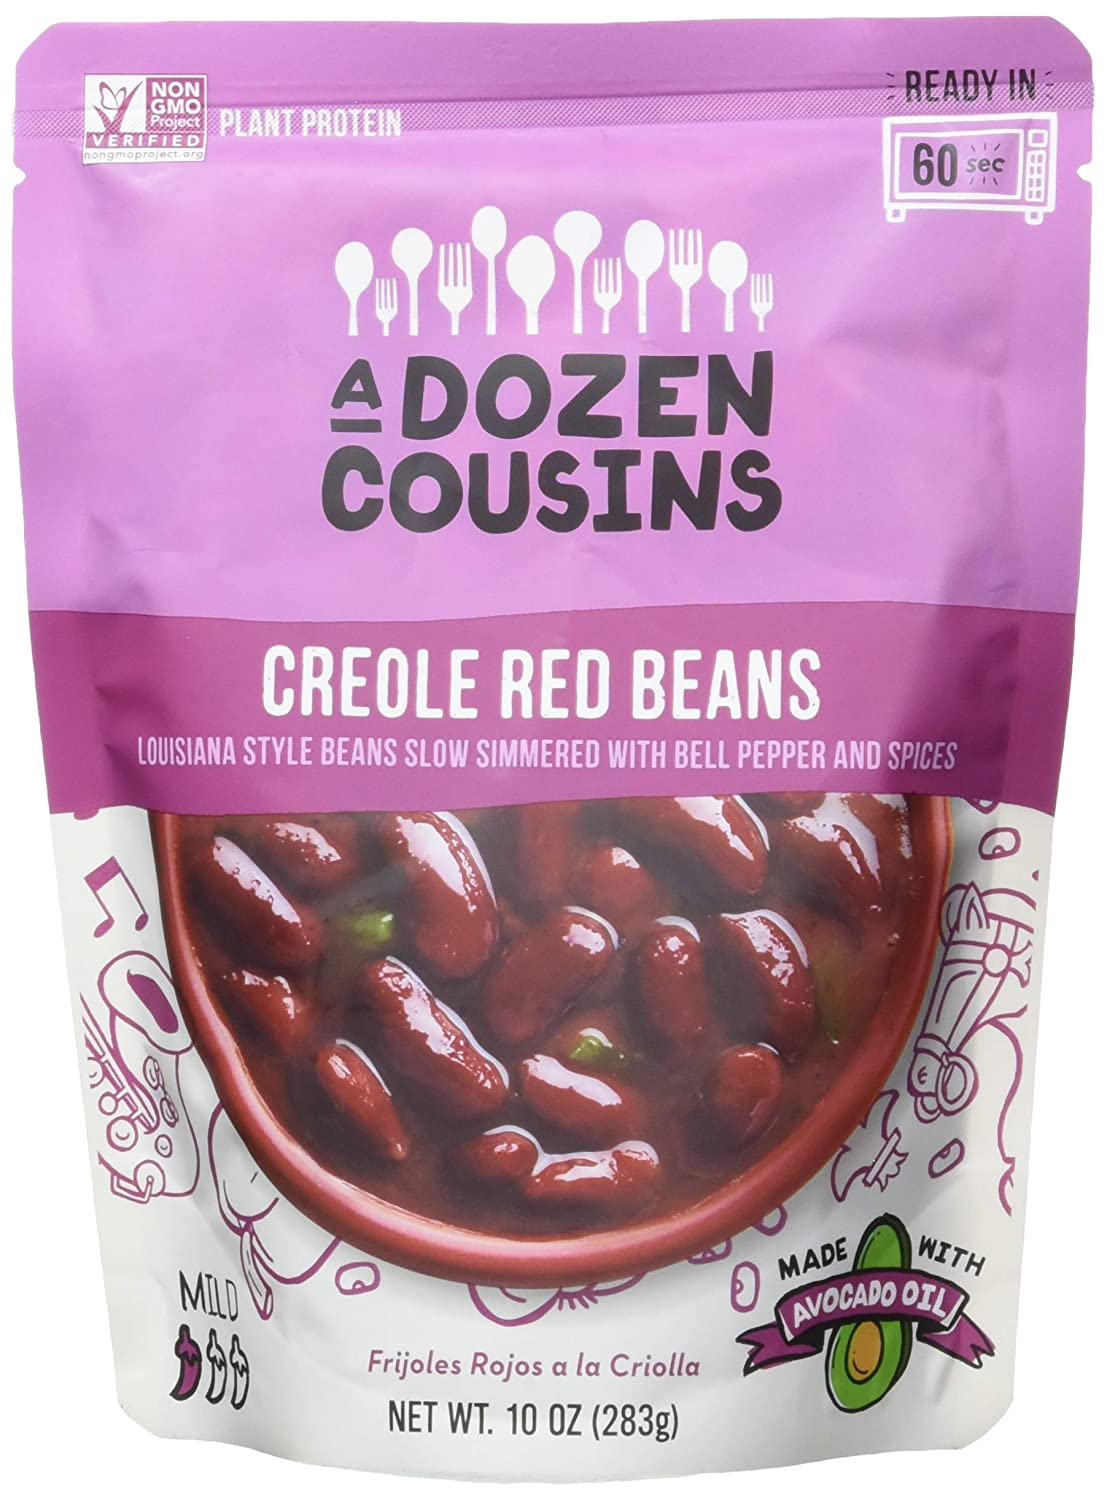 A DOZEN New mail order COUSINS New product type Creole Red Beans 10 OZ